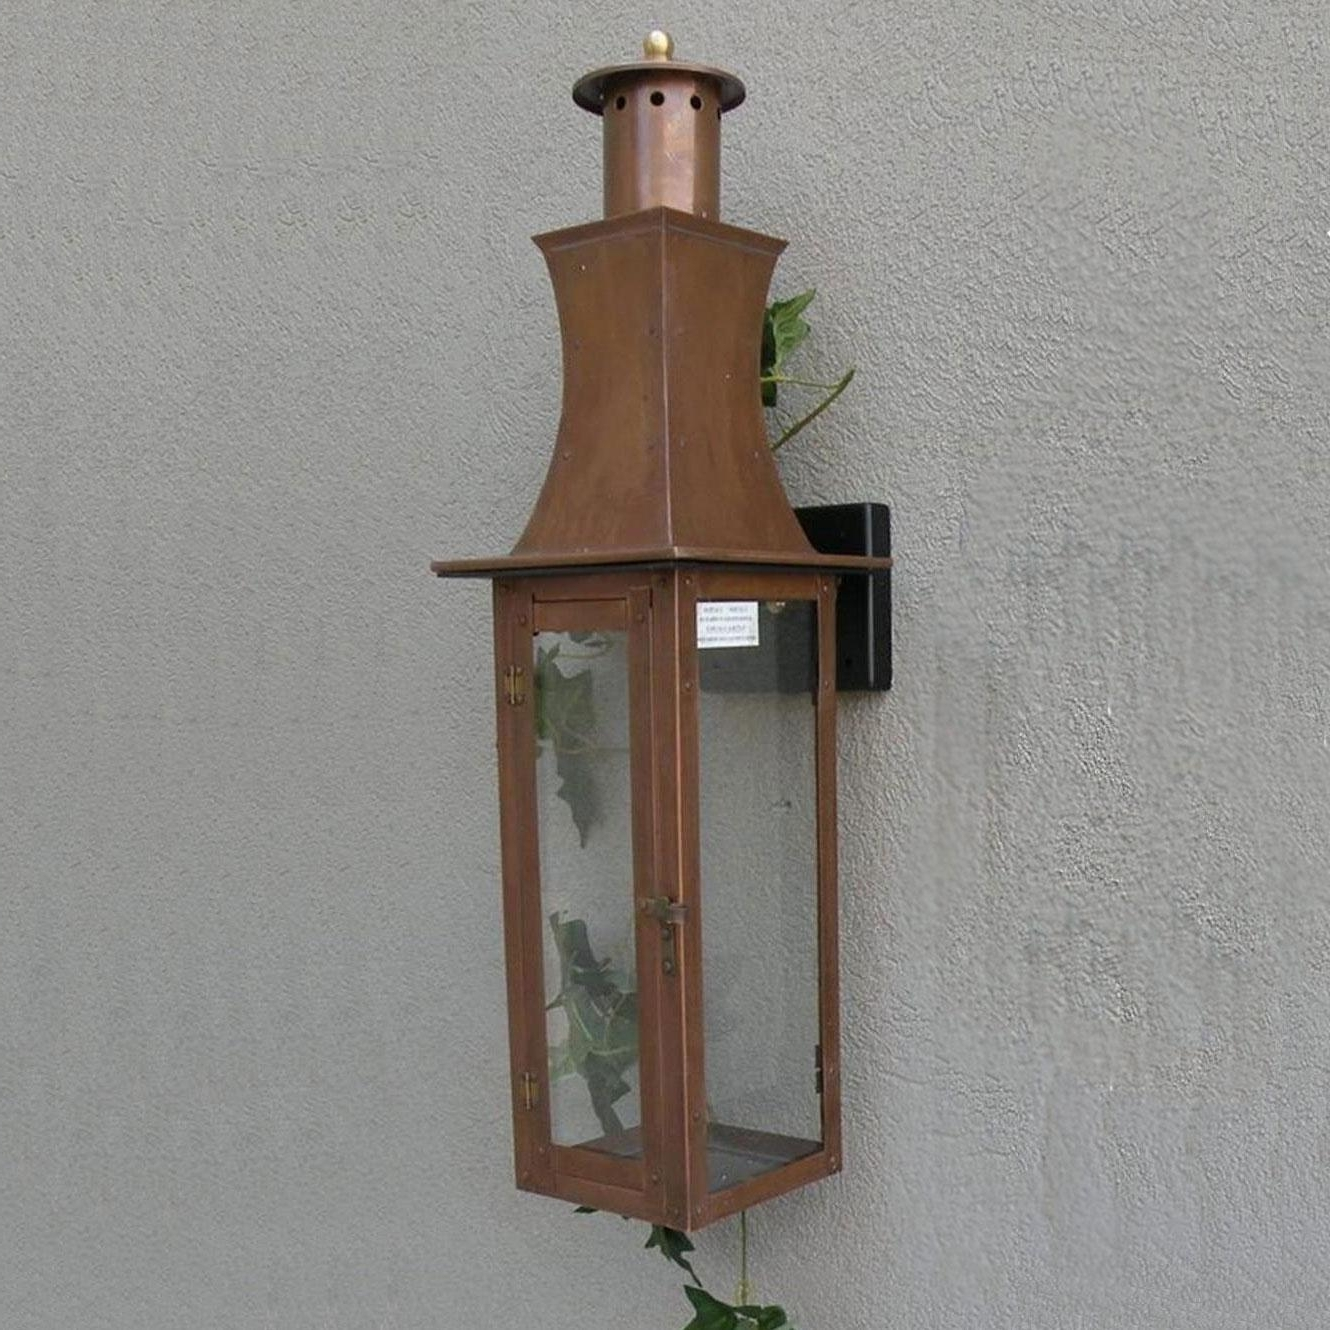 Fashionable Japanese Outdoor Wall Lighting Inside Lovely Antique Hanging On The Wall Outdoor Lighting Fixture Using (View 6 of 20)